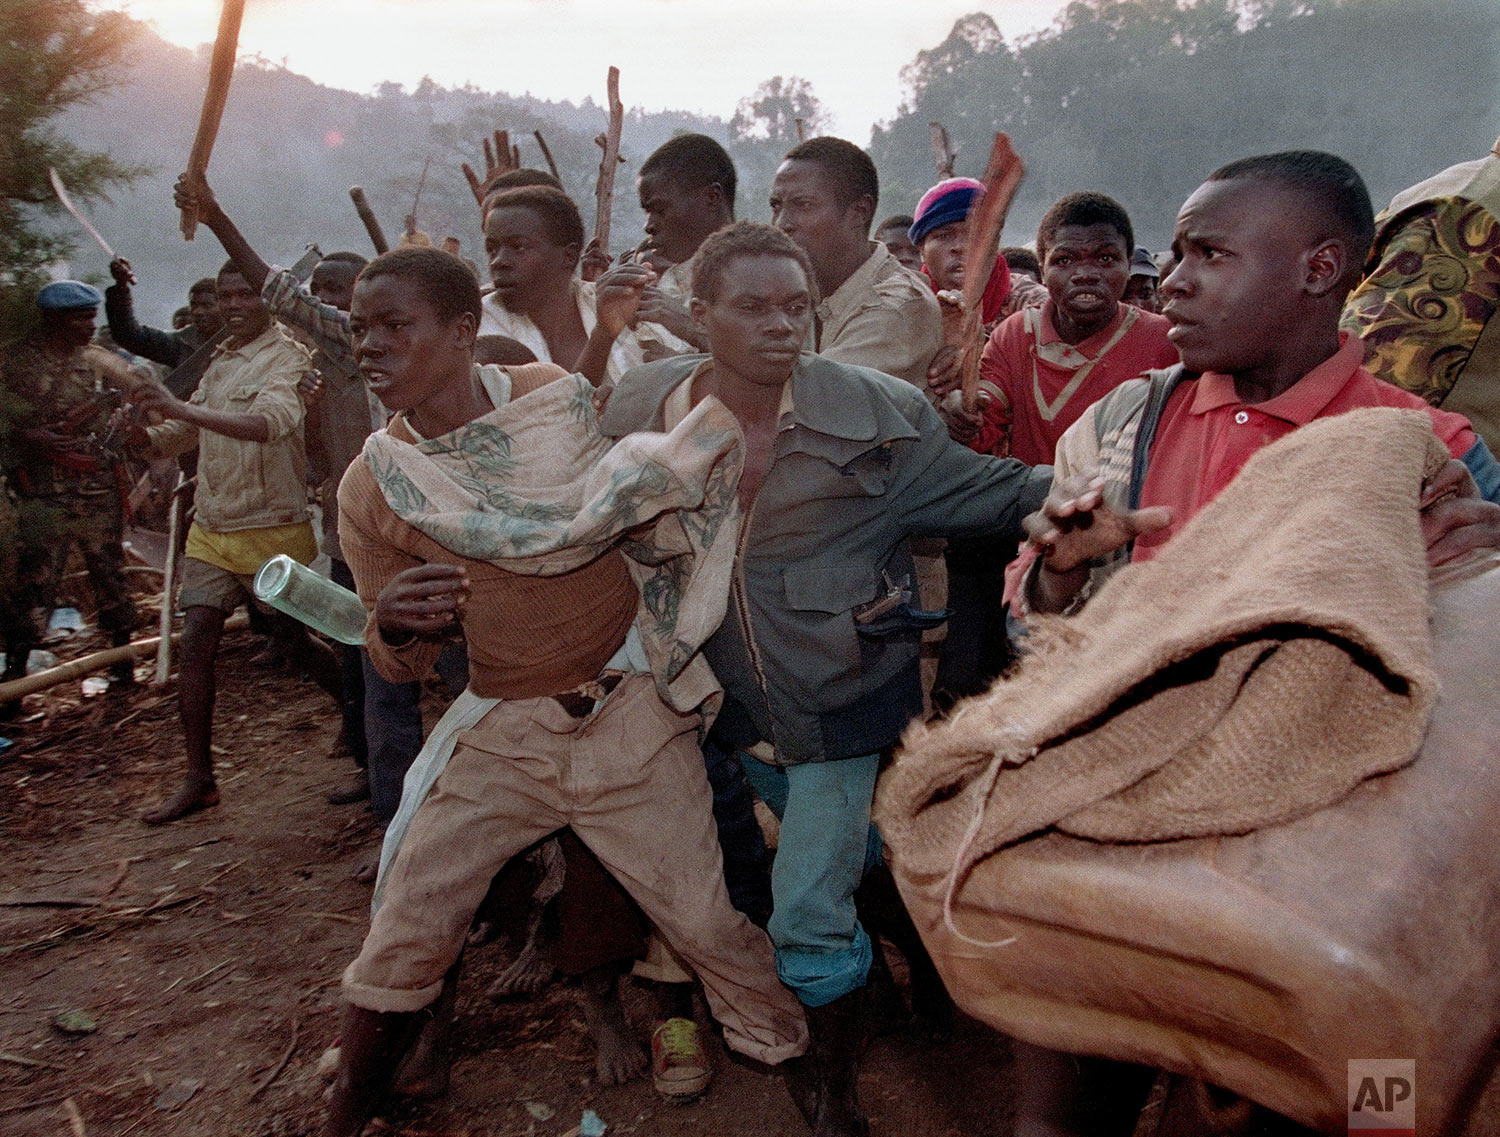 A crowd of Rwandan refugees angered by the closing of the border run to the border bridge to force their way into Zaire, Aug. 21, 1994. (AP Photo/Jean-Marc Bouju)